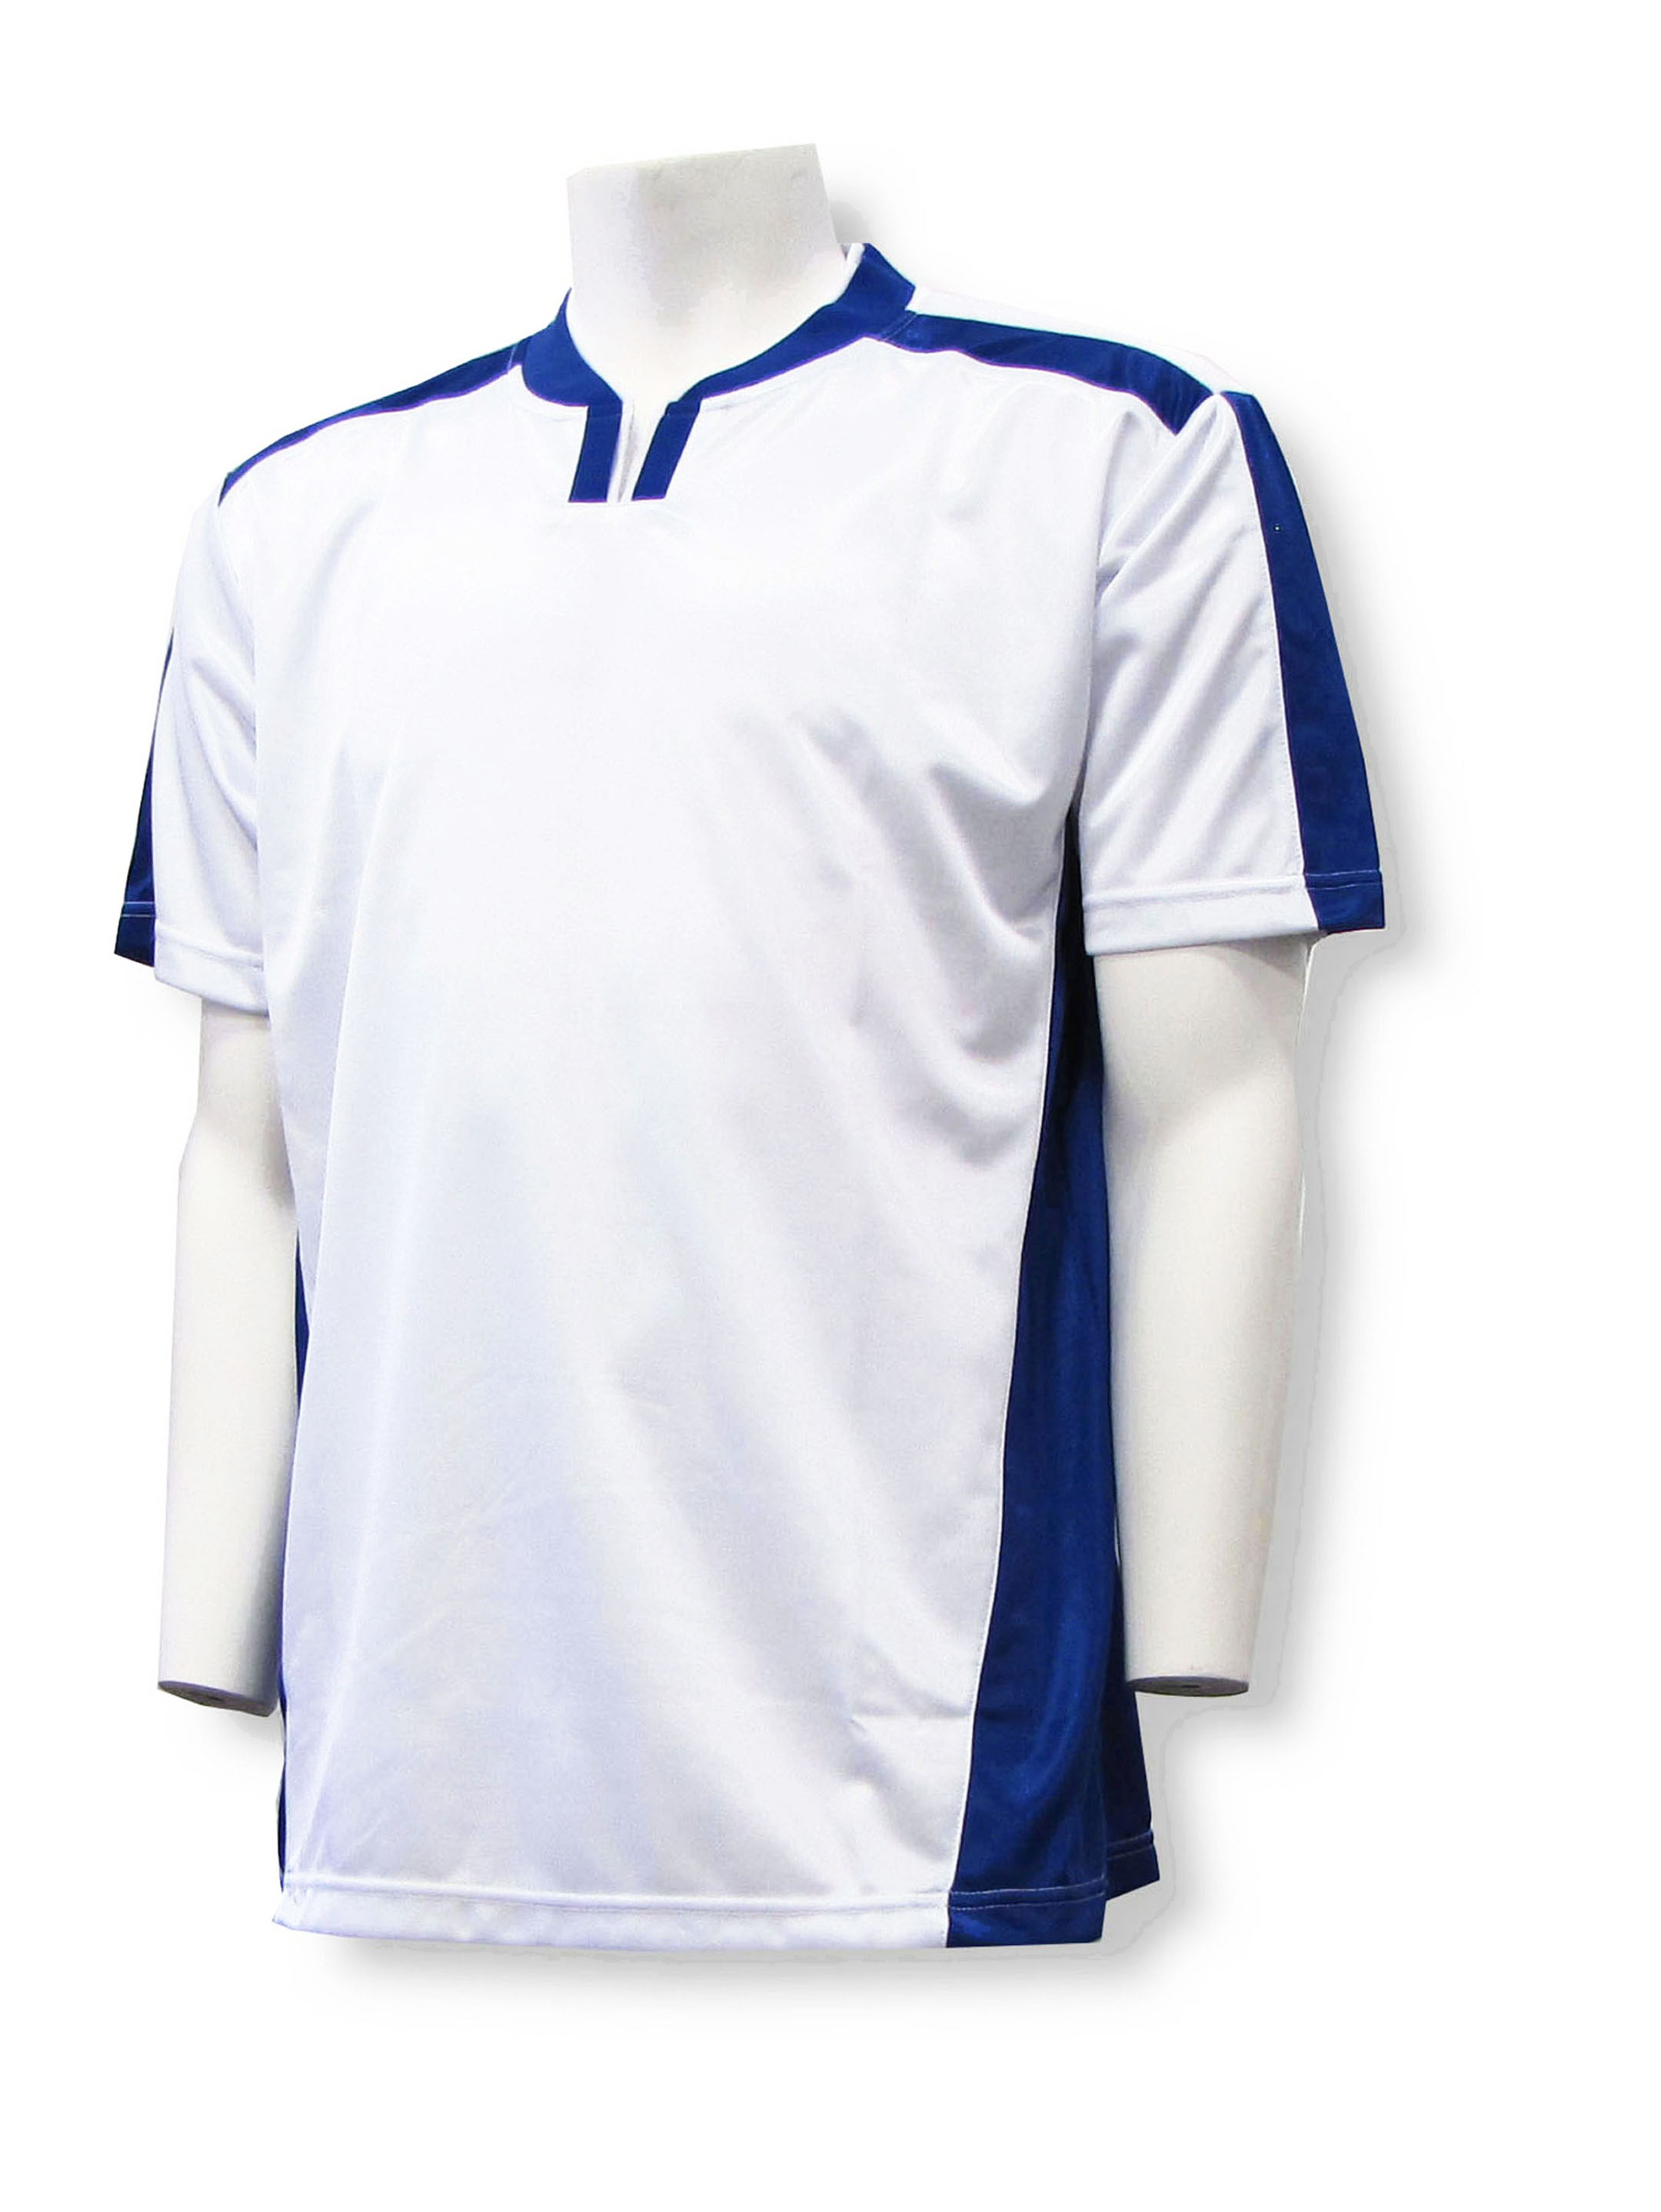 Winchester soccer jersey in white/navy by Code Four Athletics